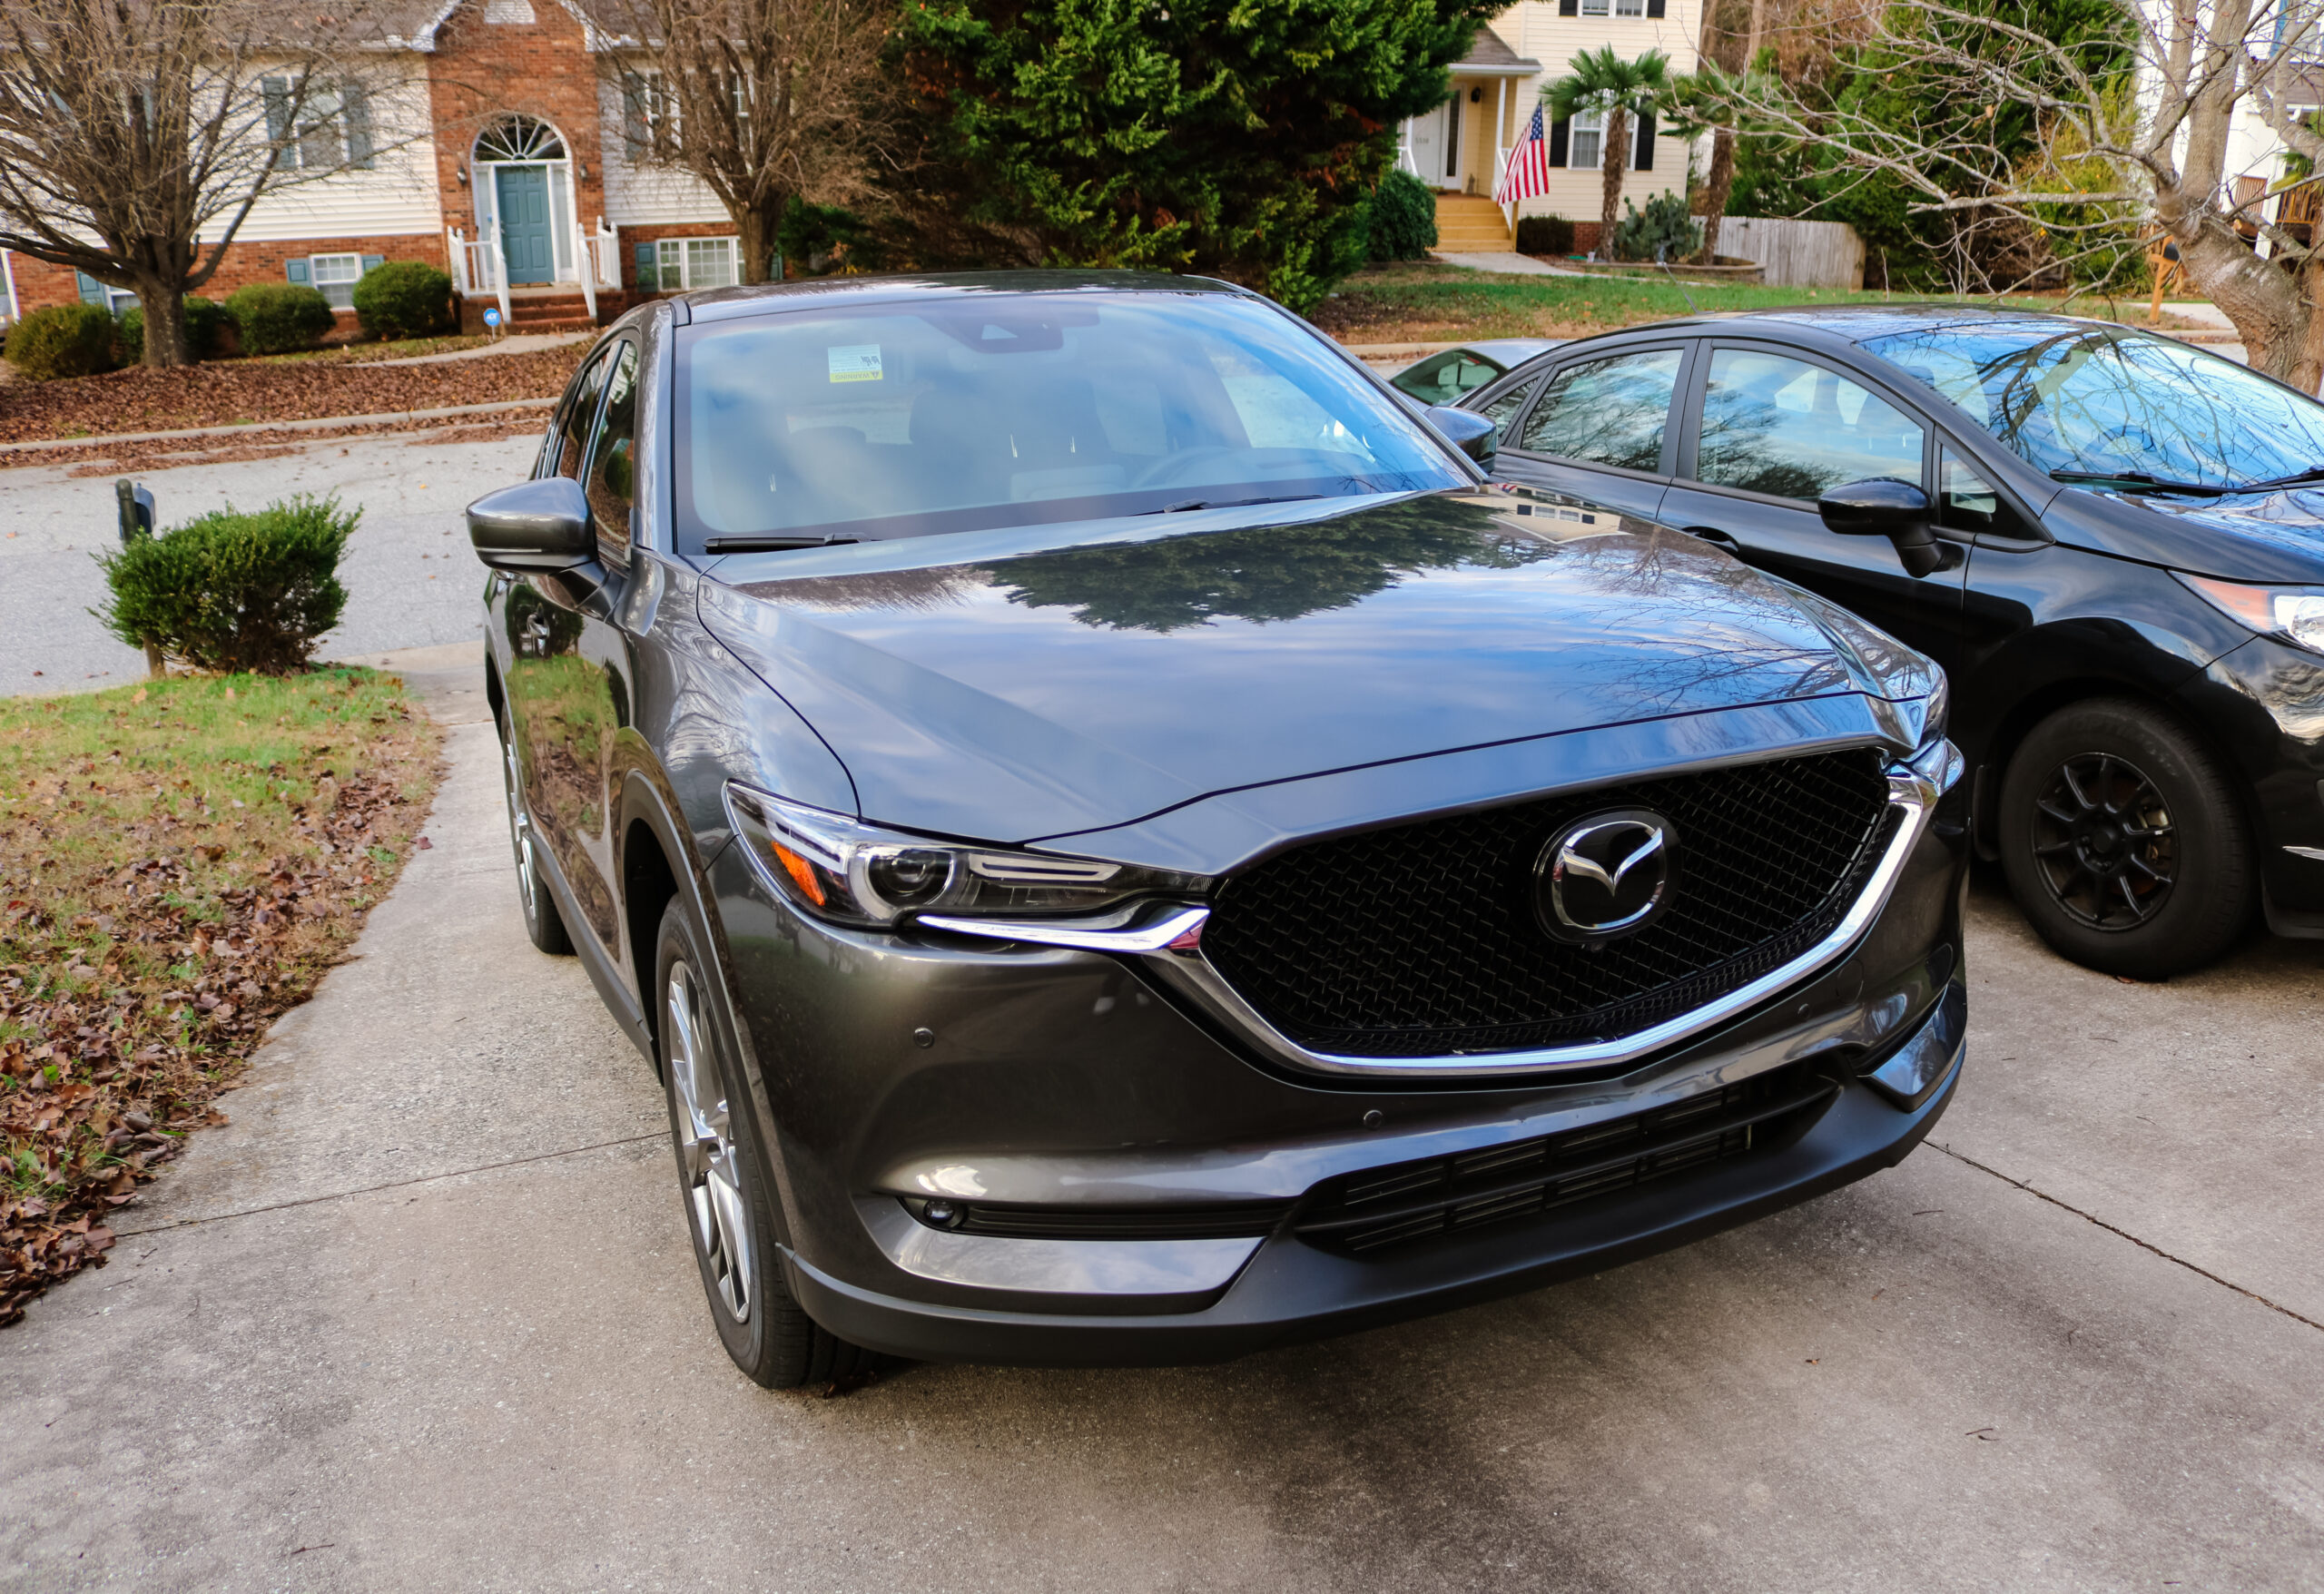 review of mazda cx-5